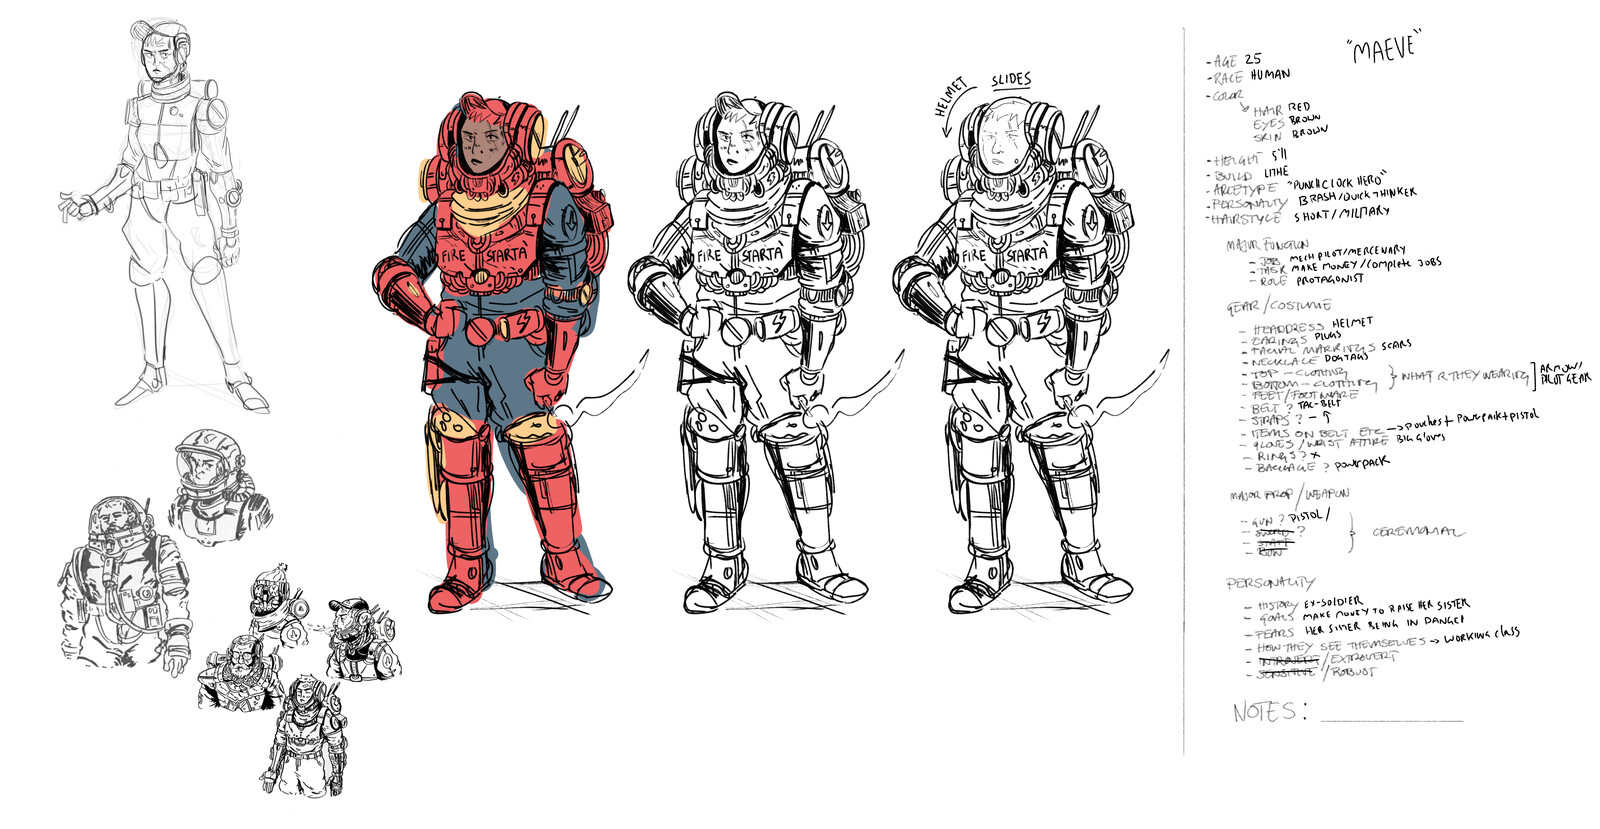 Initial sketch and concept design